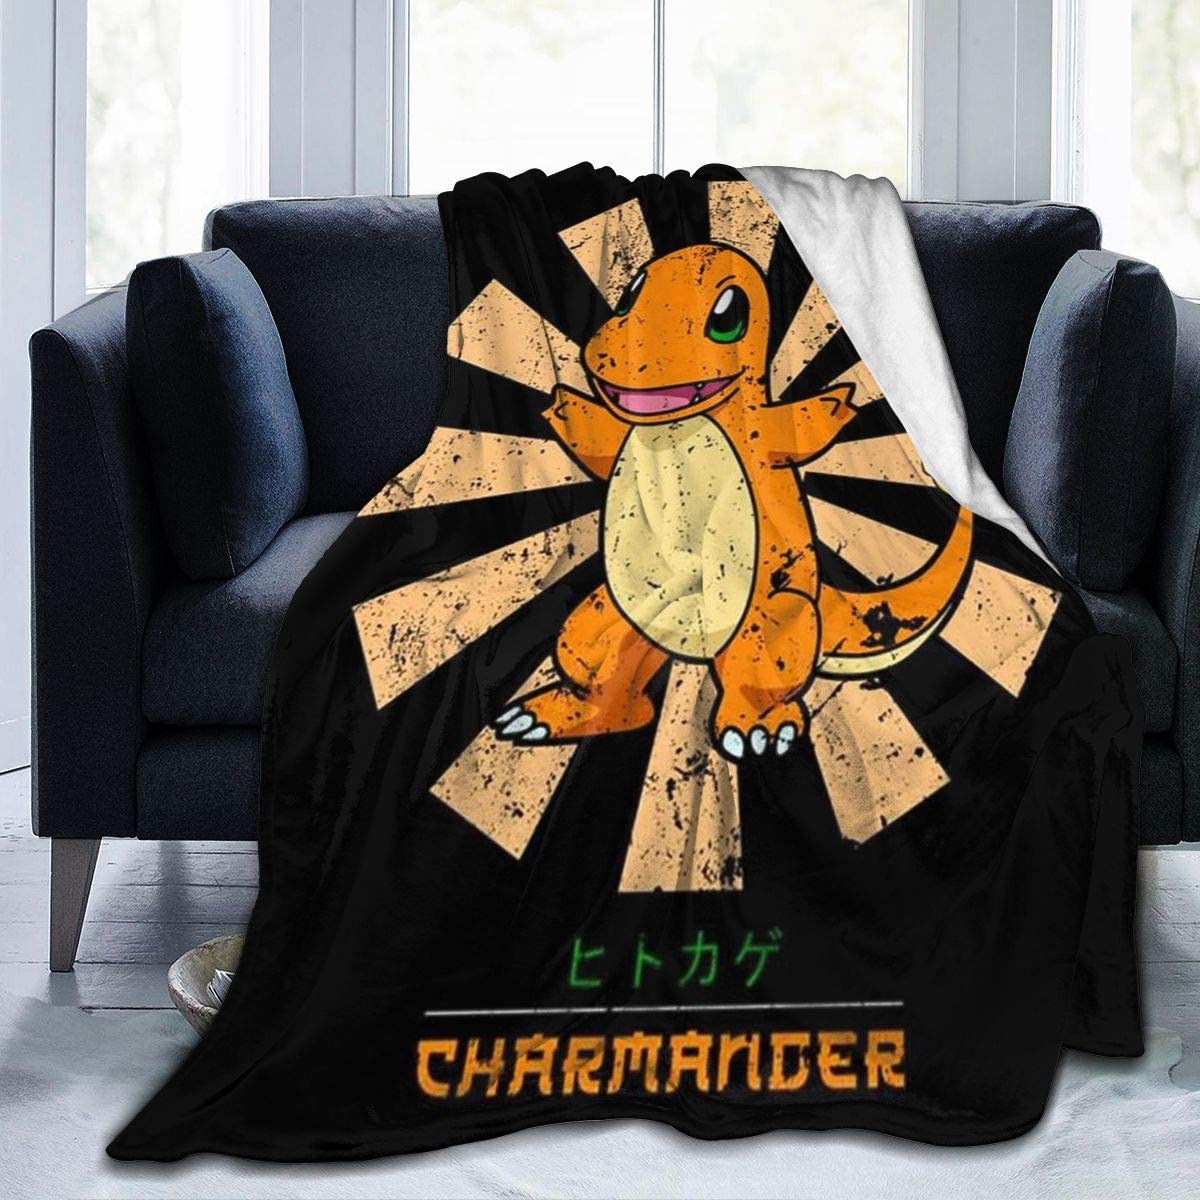 Poke-mon Charmander Retro Japanese Fleece Blanket Ultra-Soft Lightweight All Seasons Fit Bed Couch Chair Office Flight and Outdoors